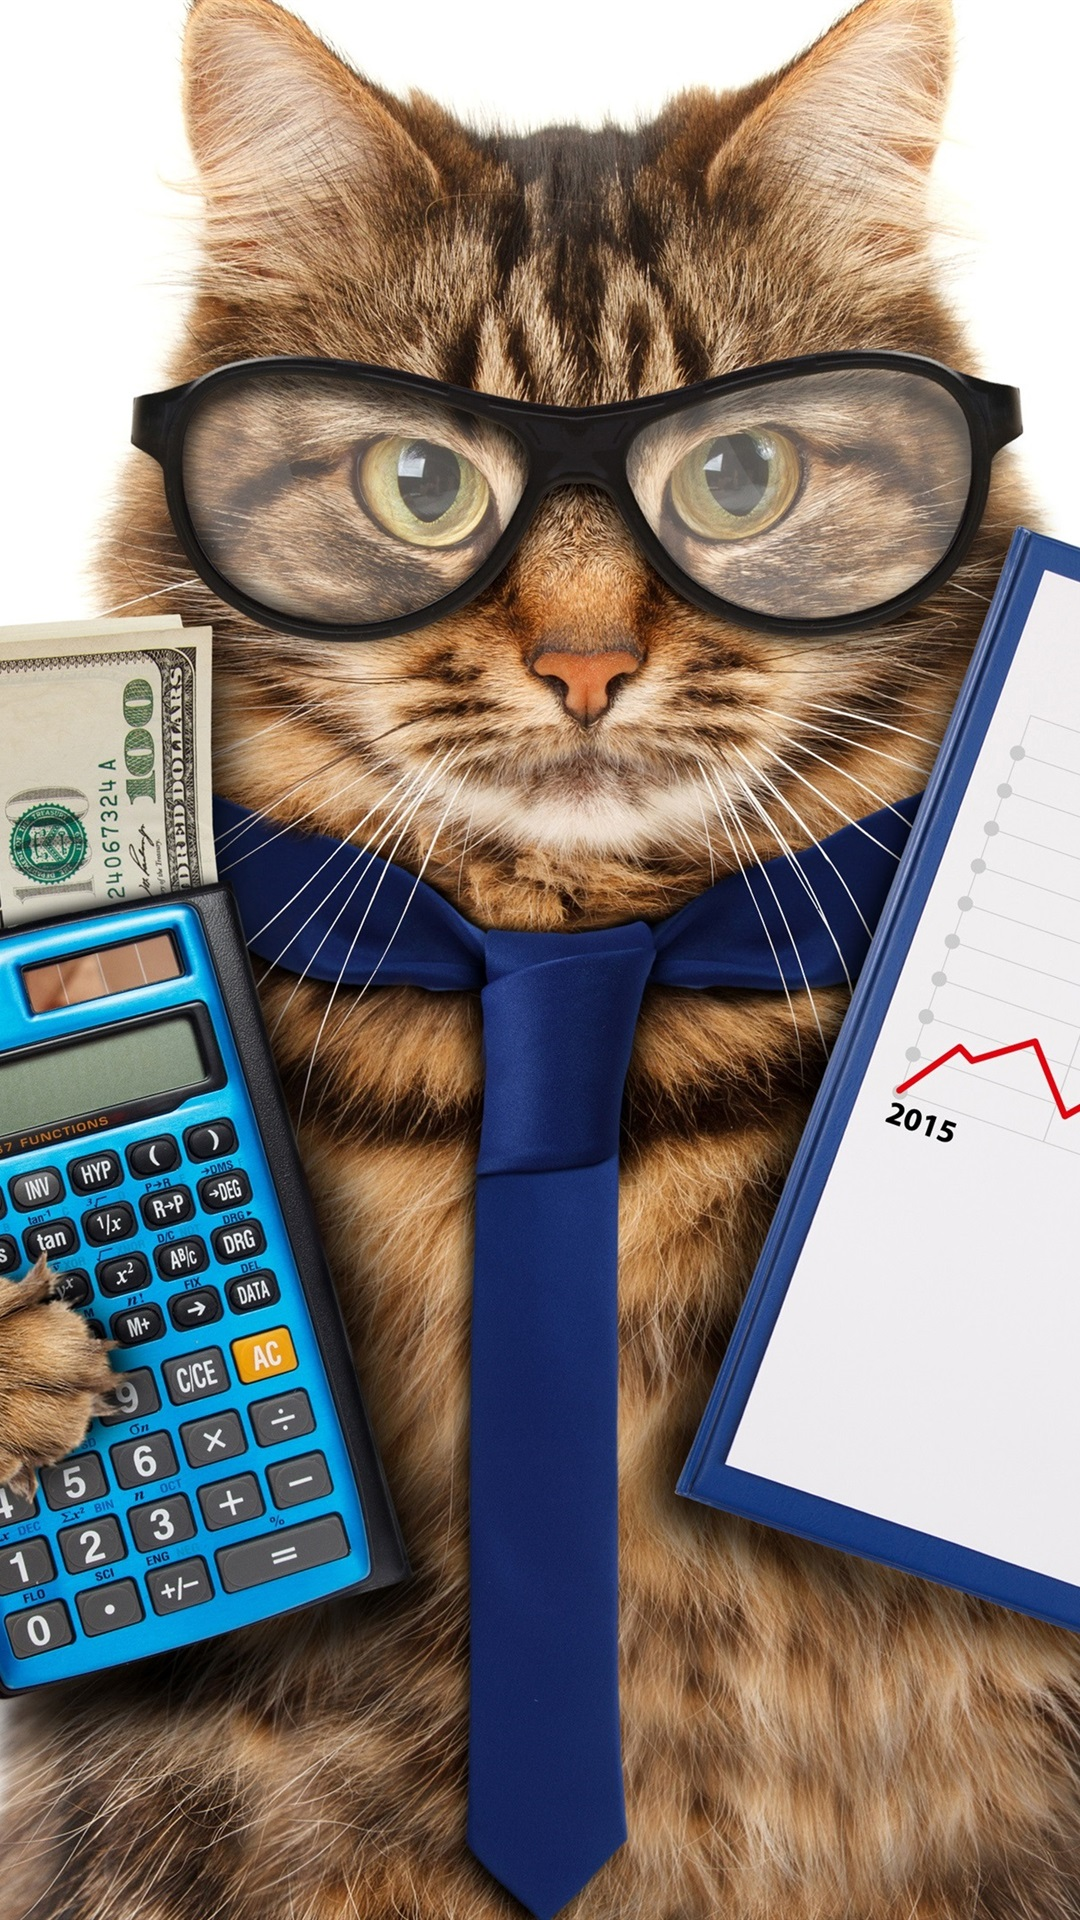 Funny Animals Cat Glasses Tie Calculator Money Accountant 1080x1920 Iphone 8 7 6 6s Plus Wallpaper Background Picture Image,Hacks Space Saving Ideas For Small Apartments